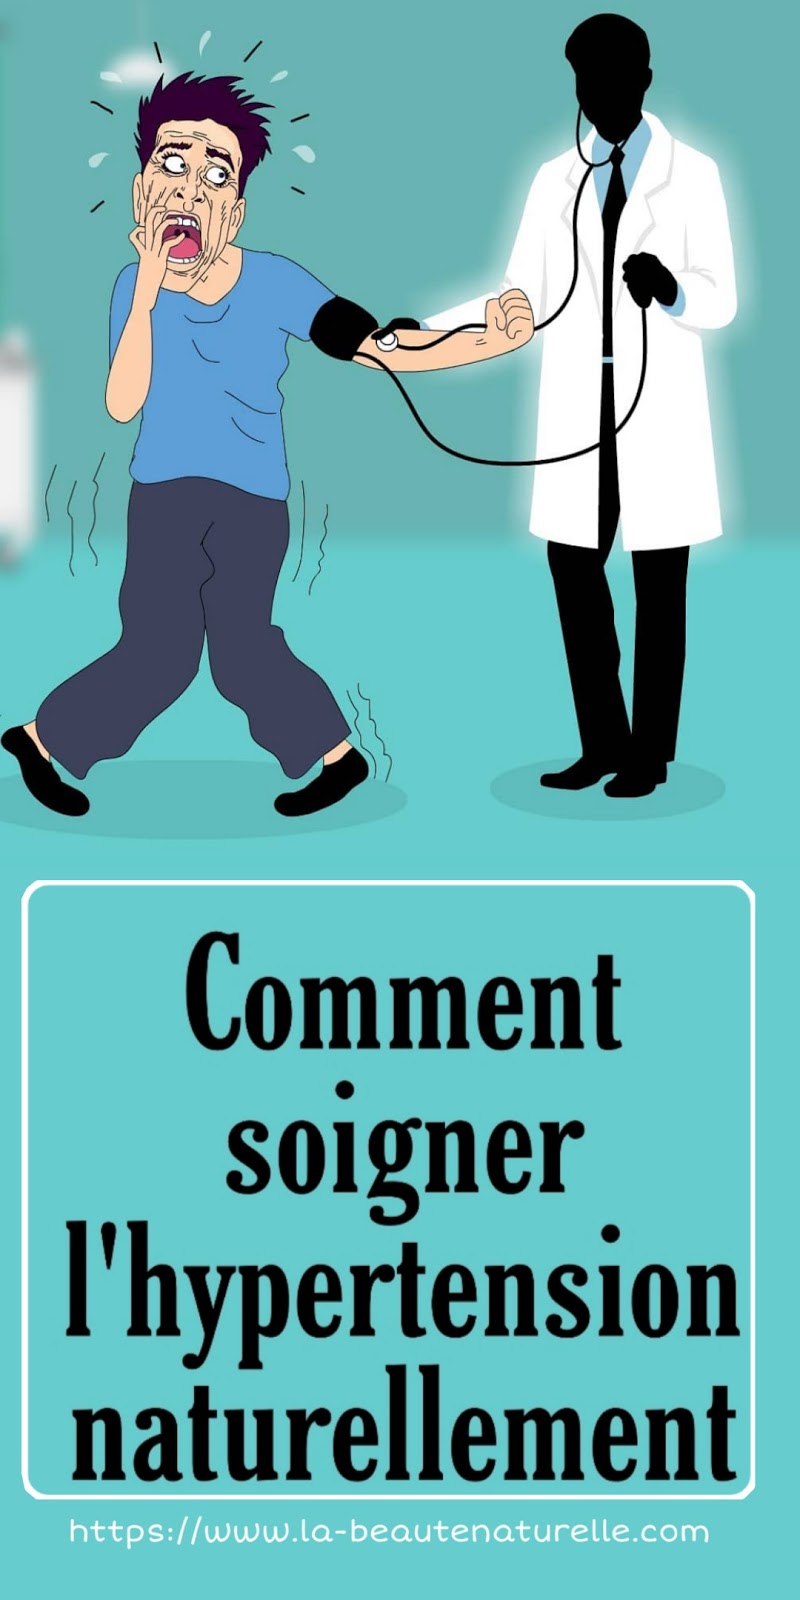 Comment soigner l'hypertension naturellement